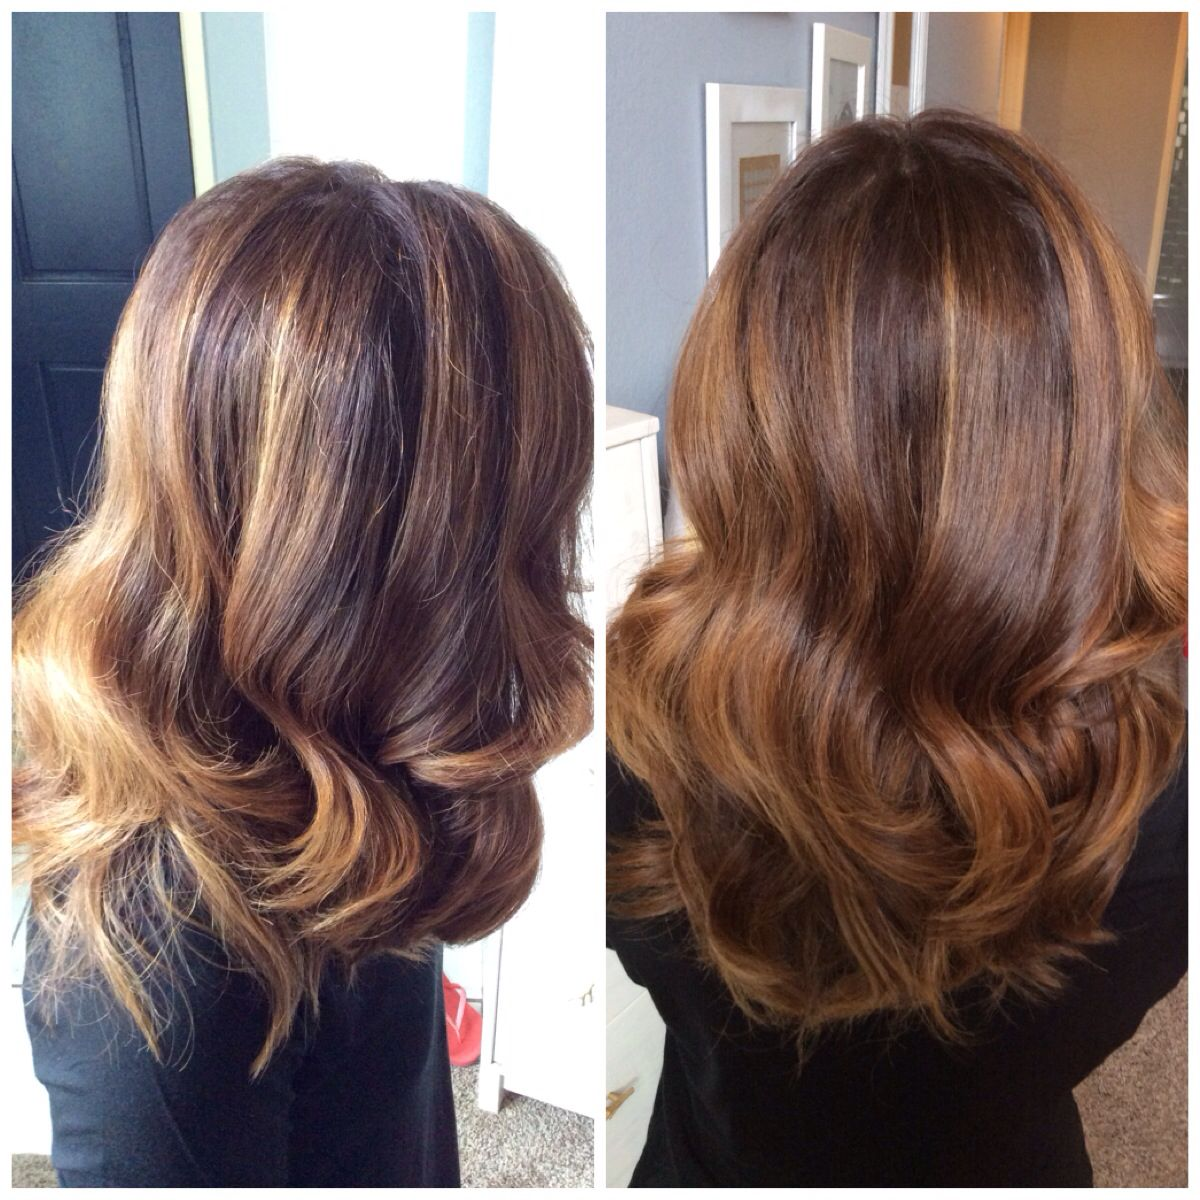 chocolate brown with caramel highlights balayage curls medium length hair melissa mcginnis. Black Bedroom Furniture Sets. Home Design Ideas